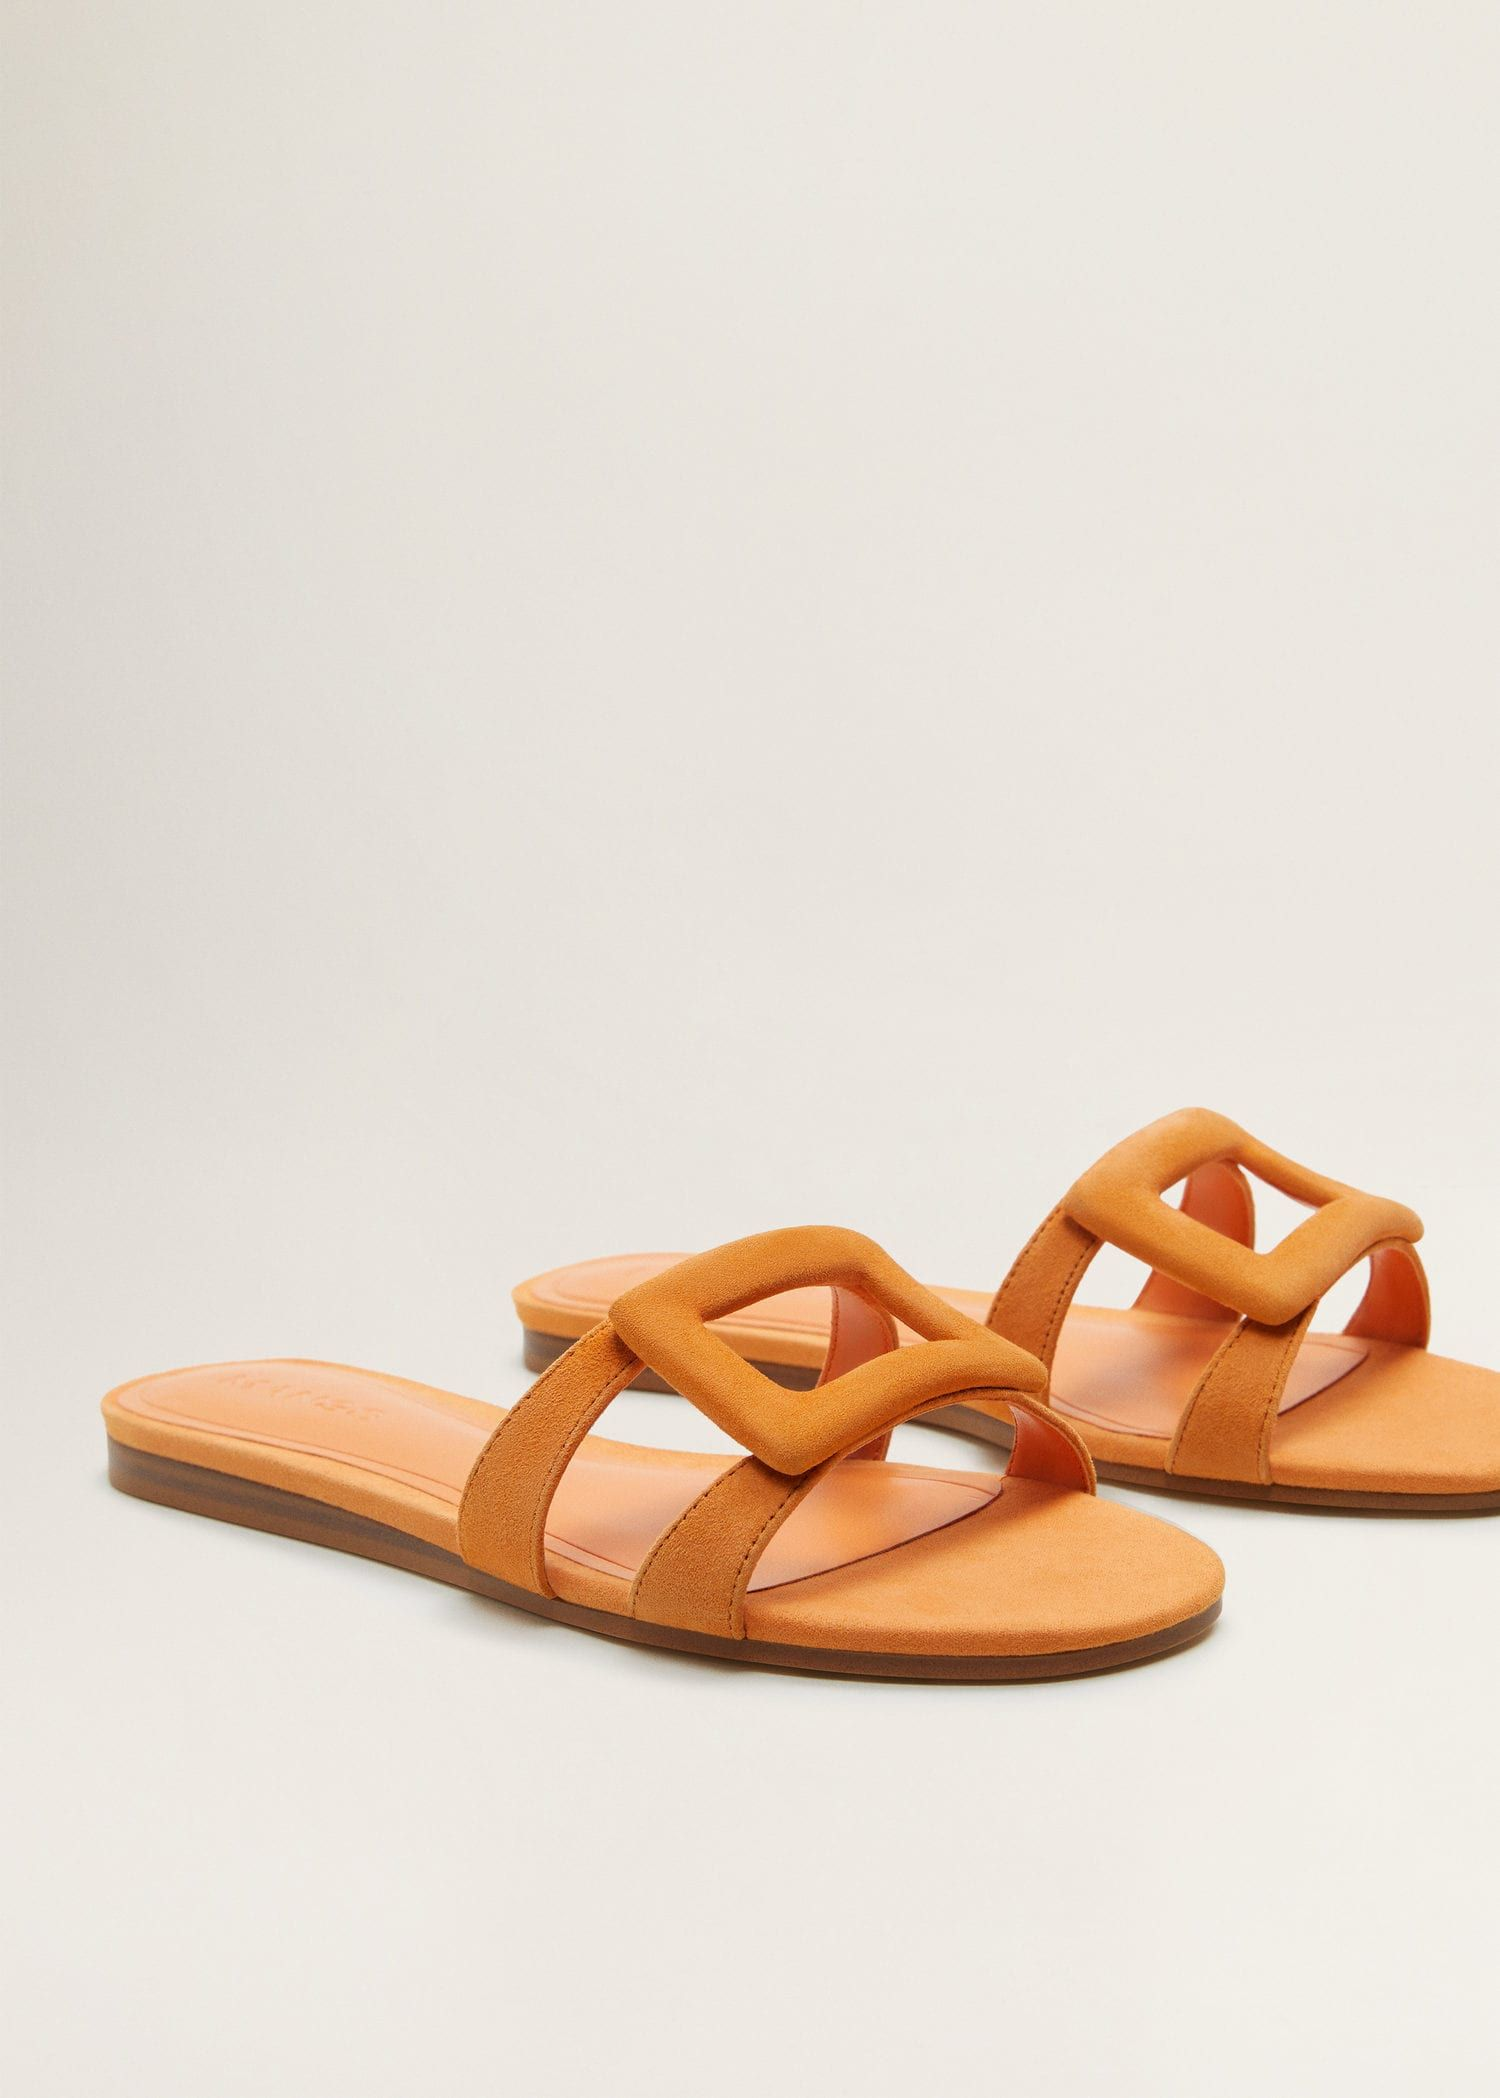 leather sandals women leather sandals, zara sandals, sandals  fitflop rally sneaker weiss